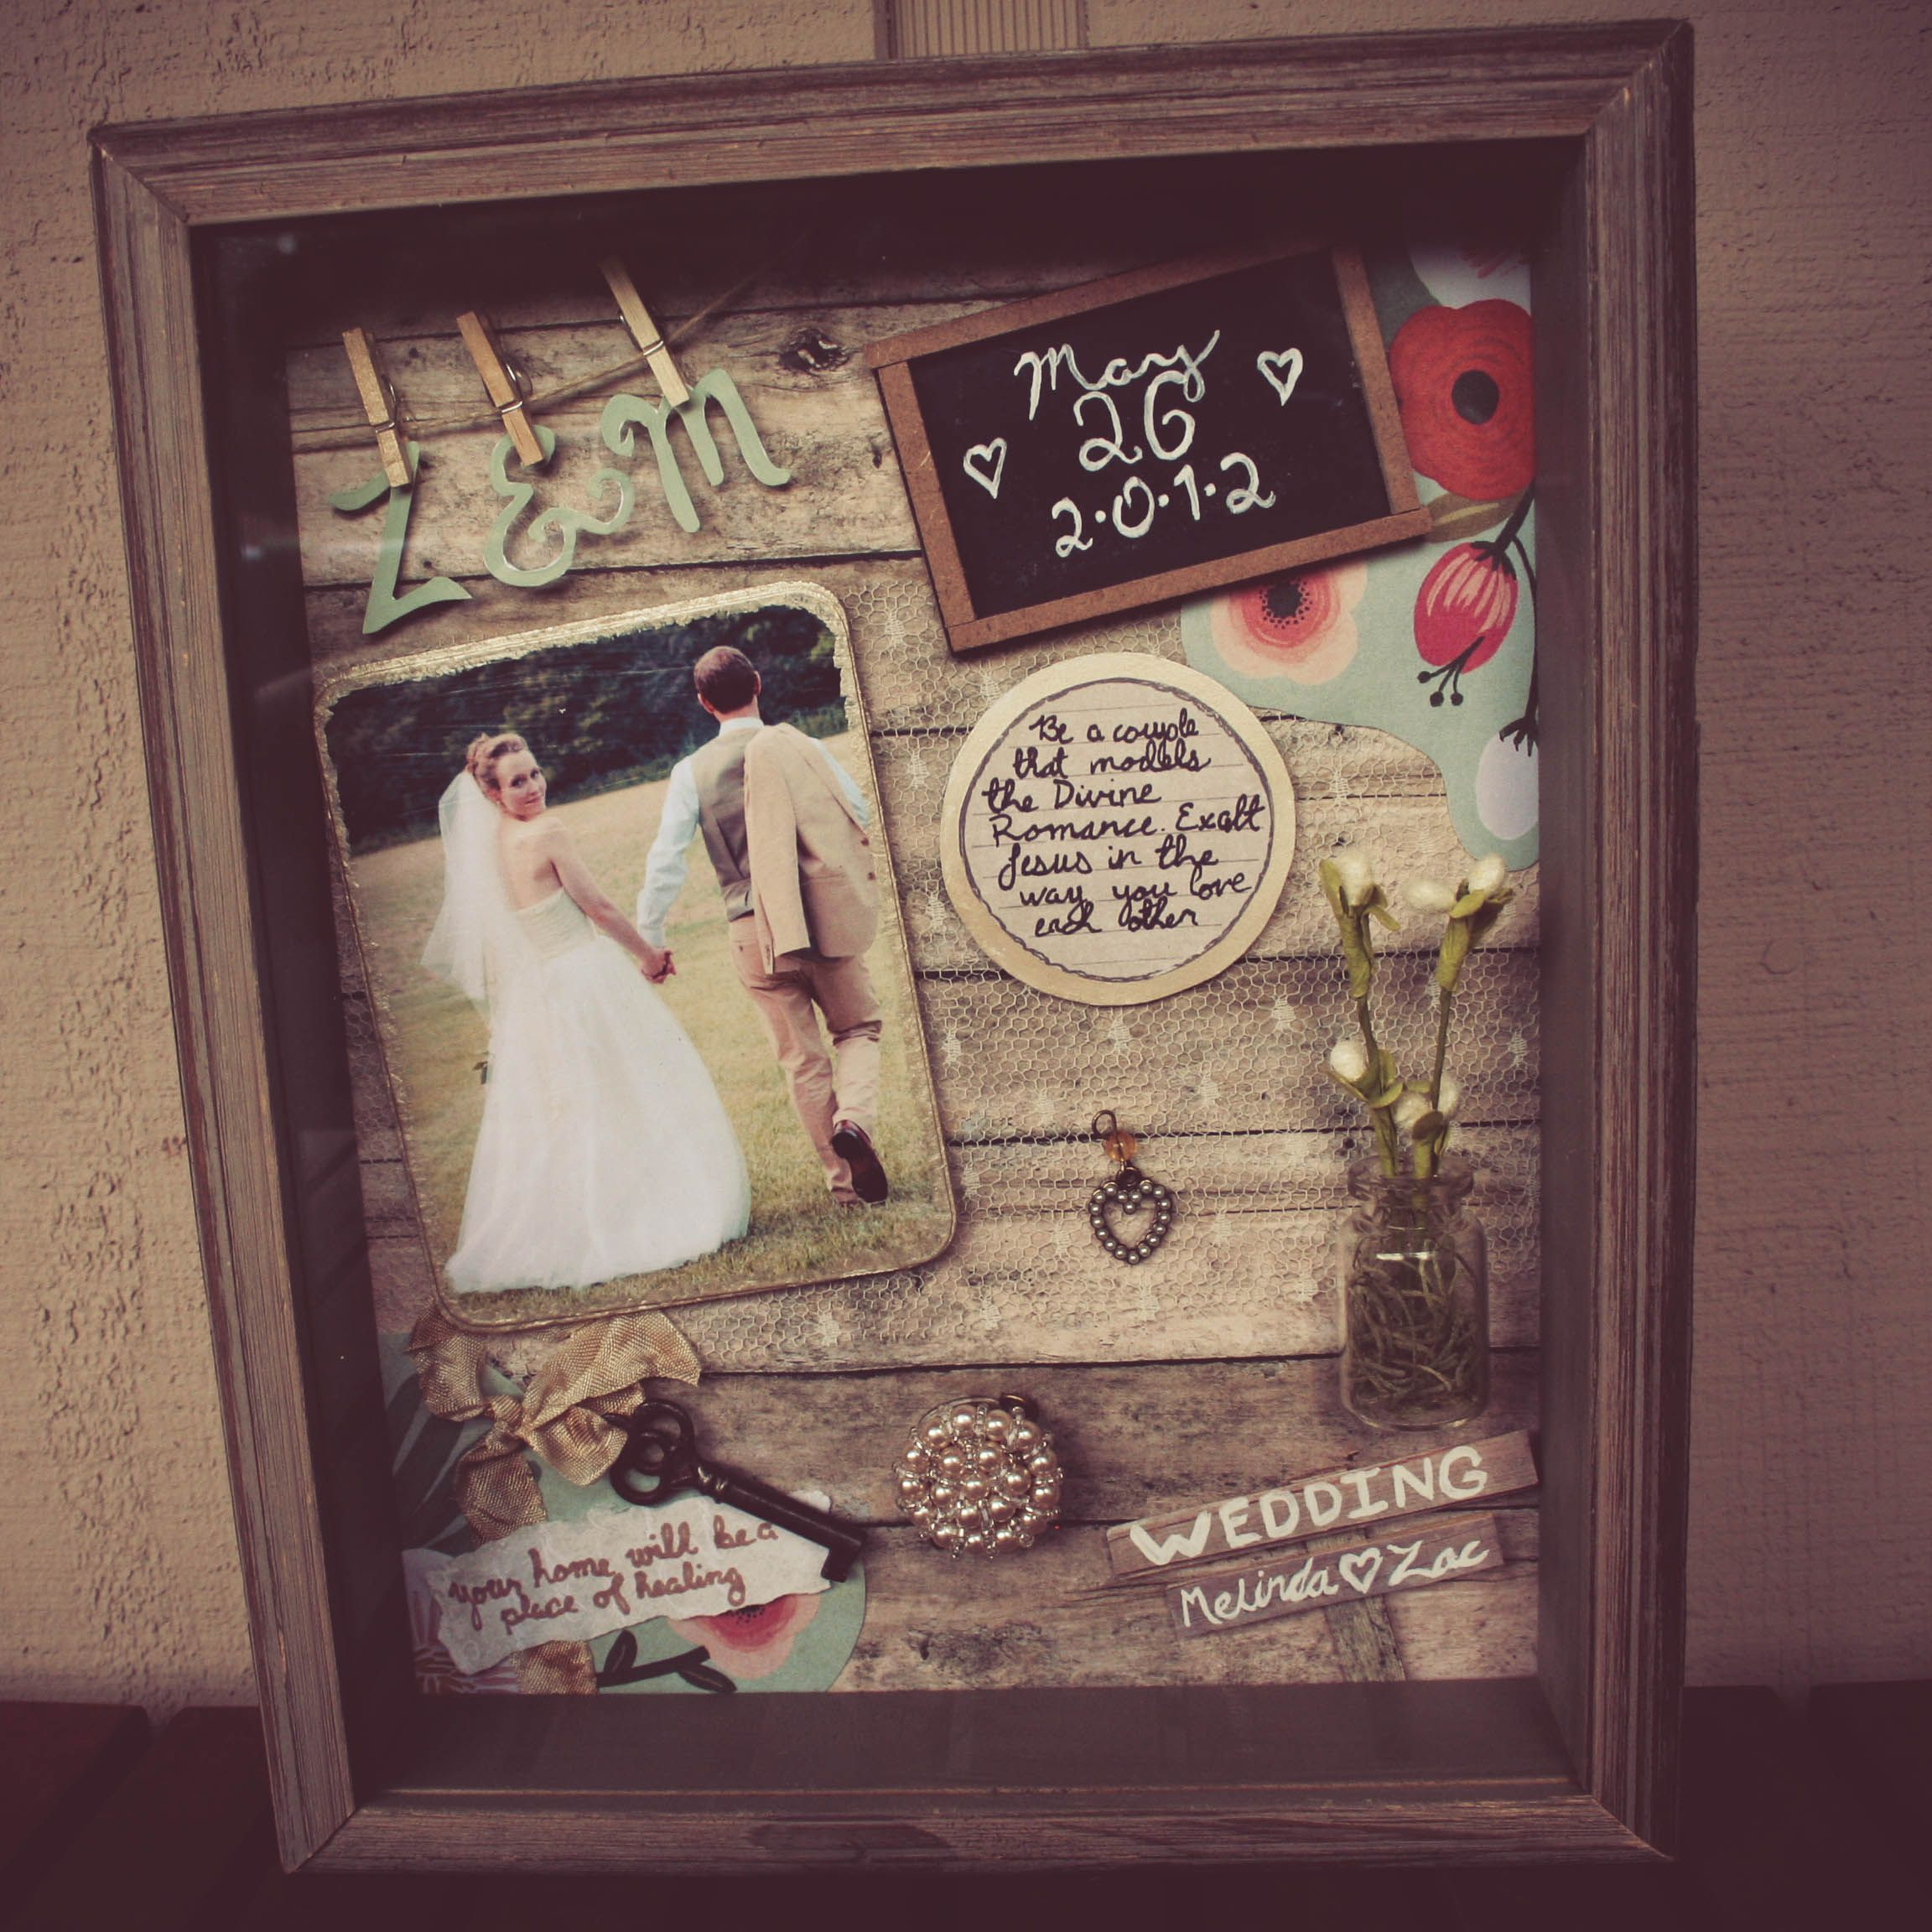 How To Decorate A Shadow Box Amusing Shadow Box Ideas To Keep Your Memories And How To Make It  Wedding Design Ideas